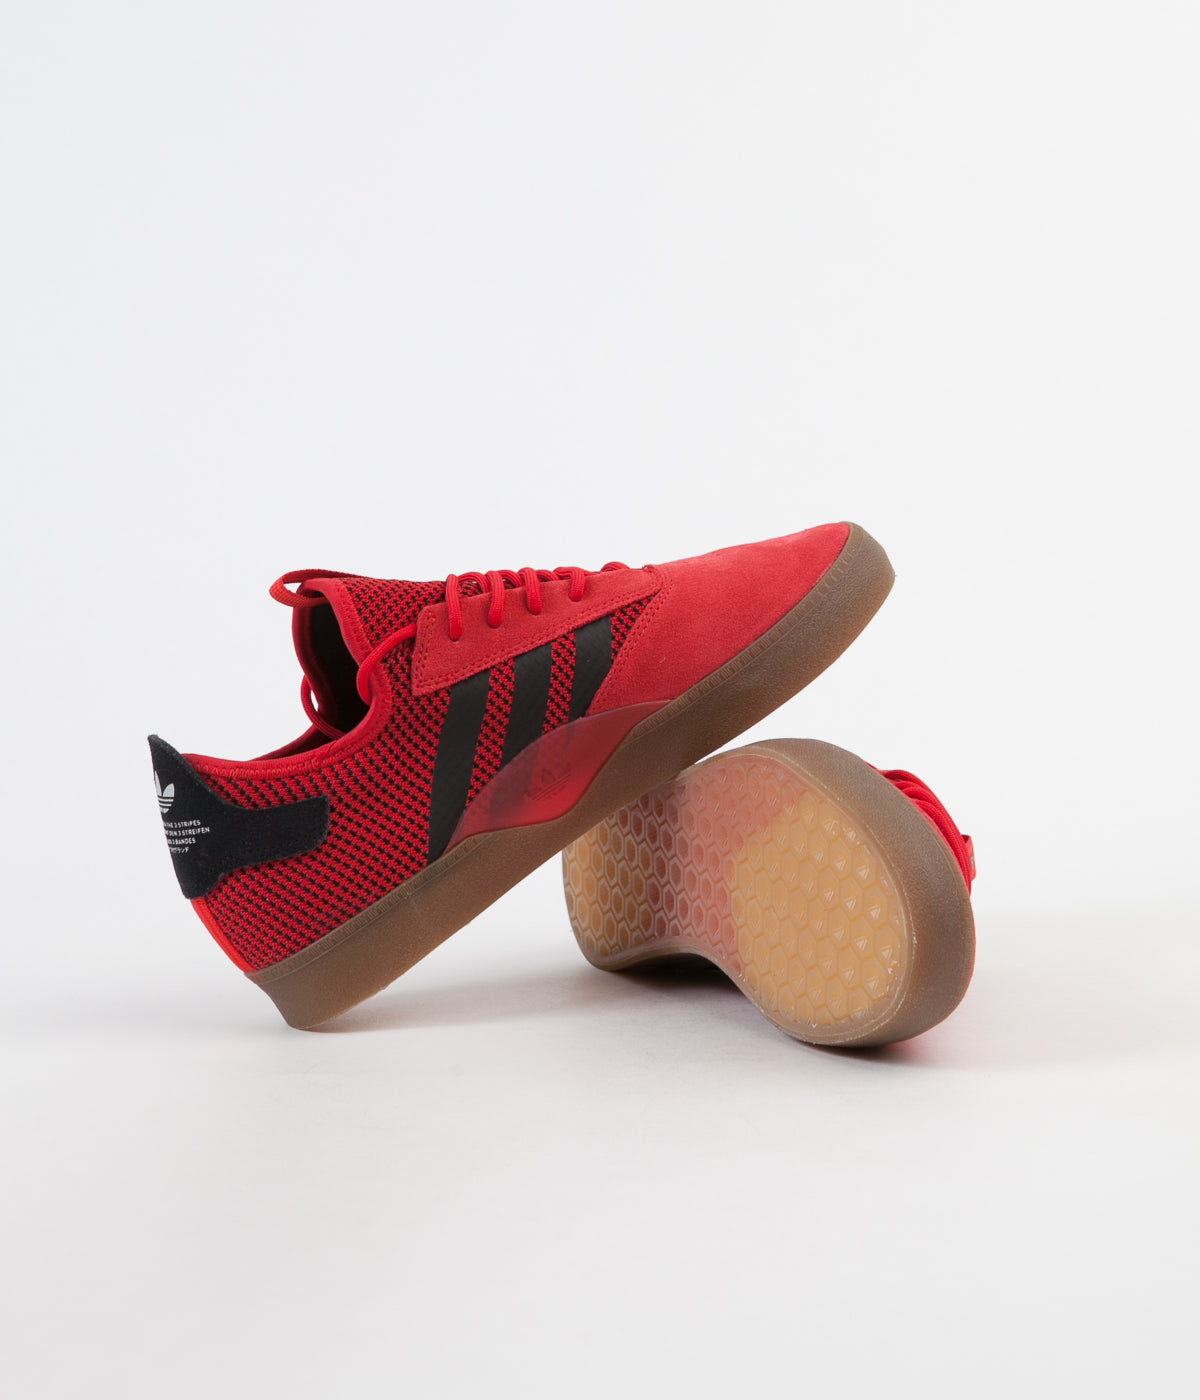 cheap for discount 08aac 504b6 ... Adidas 3ST.001 Shoes - Scarlet  Core Black  Gum4 ...